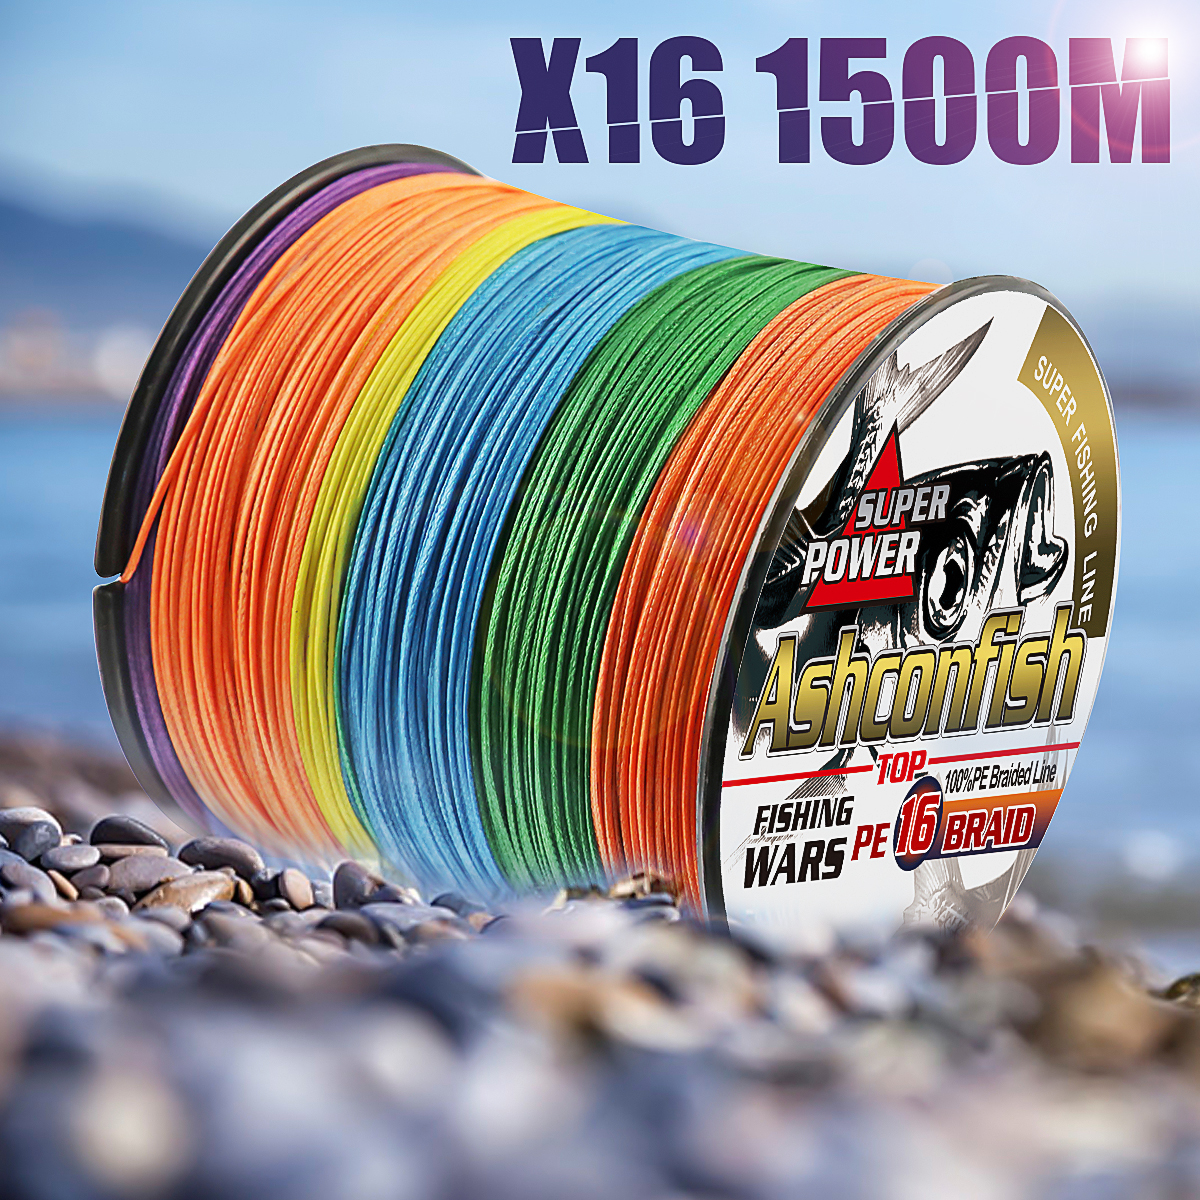 Super hollowcore braided fishing line 1500M 16 Strands pe super Ocean Fishing braided wires 20 500LBS leader line 0.16 2.0mm - 5